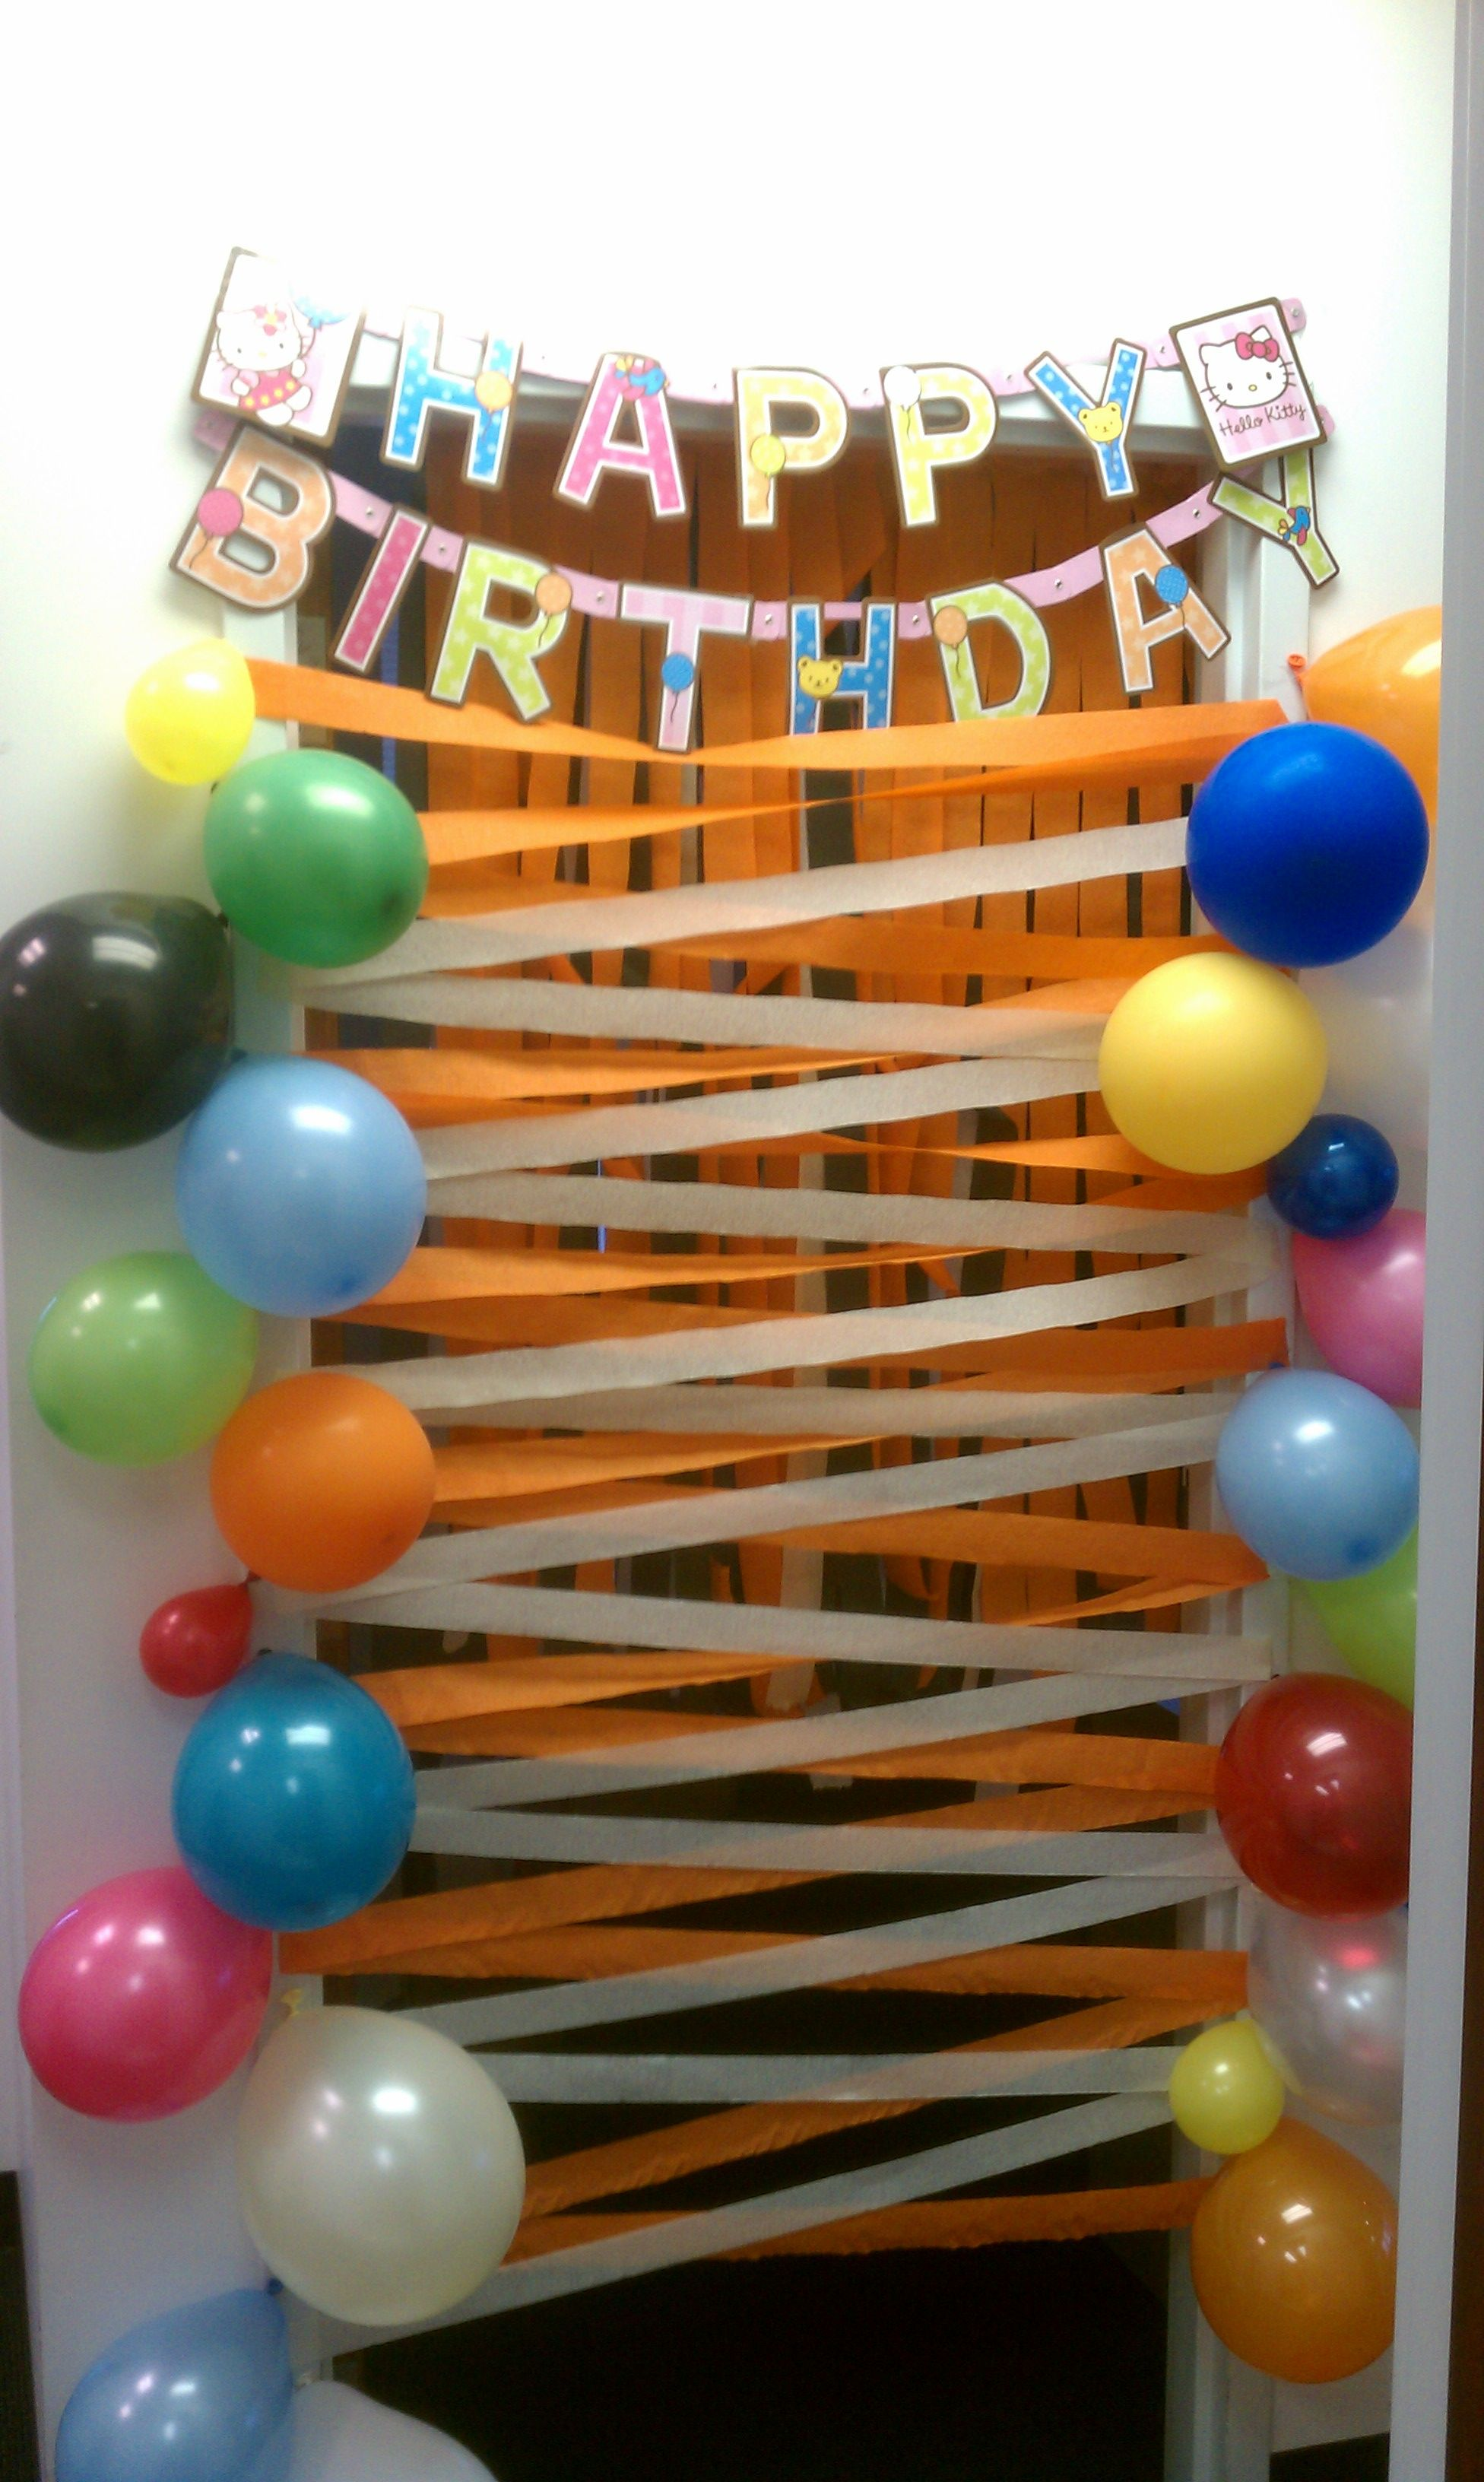 A Nice Birthday Surprise For My Coworker Door Decorations